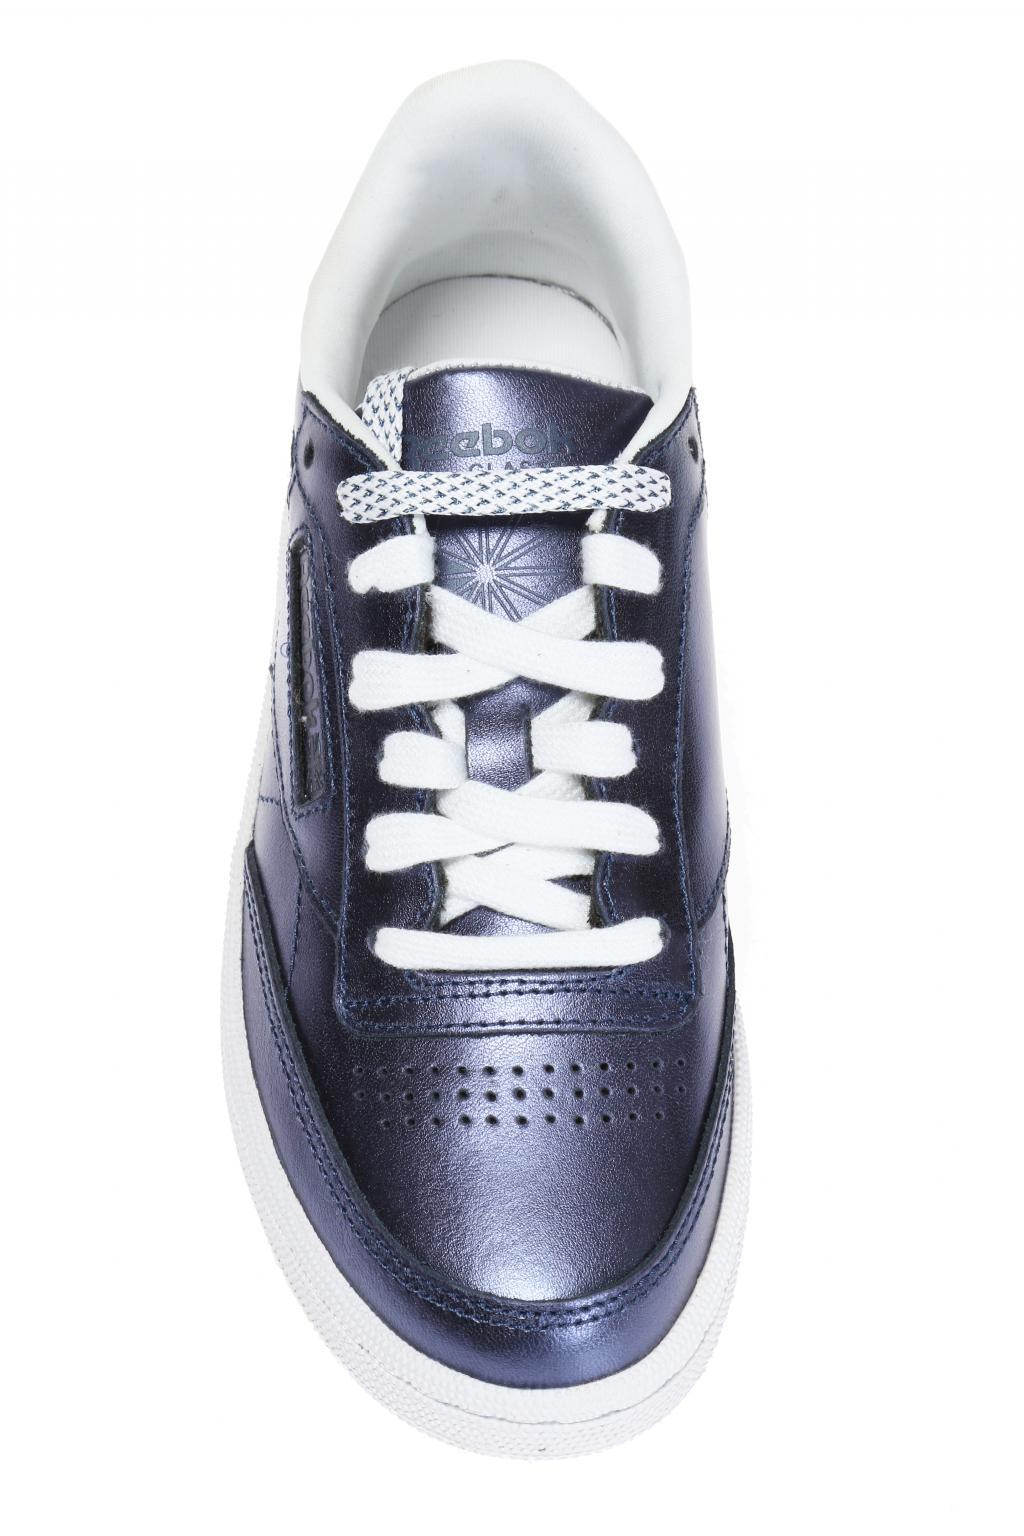 Reebok Leather 'club C 85 S Shine' Sneakers in Navy Blue (Blue)